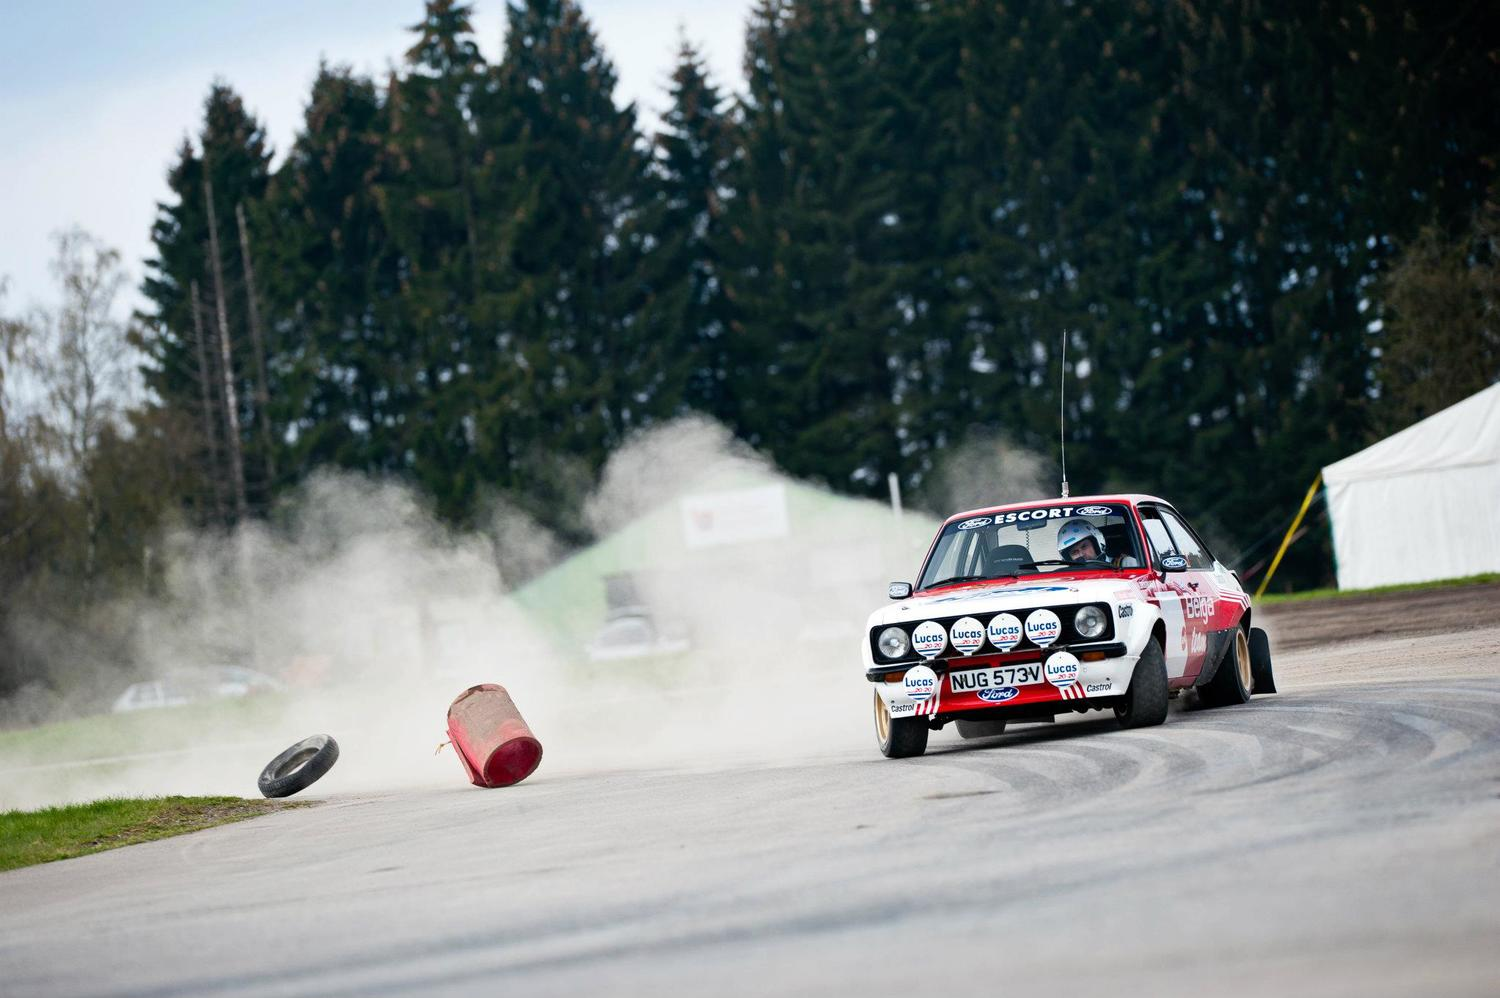 For many an RS1800 going sideways at a seemingly impossible angle is the defining image of mid '70s rallying